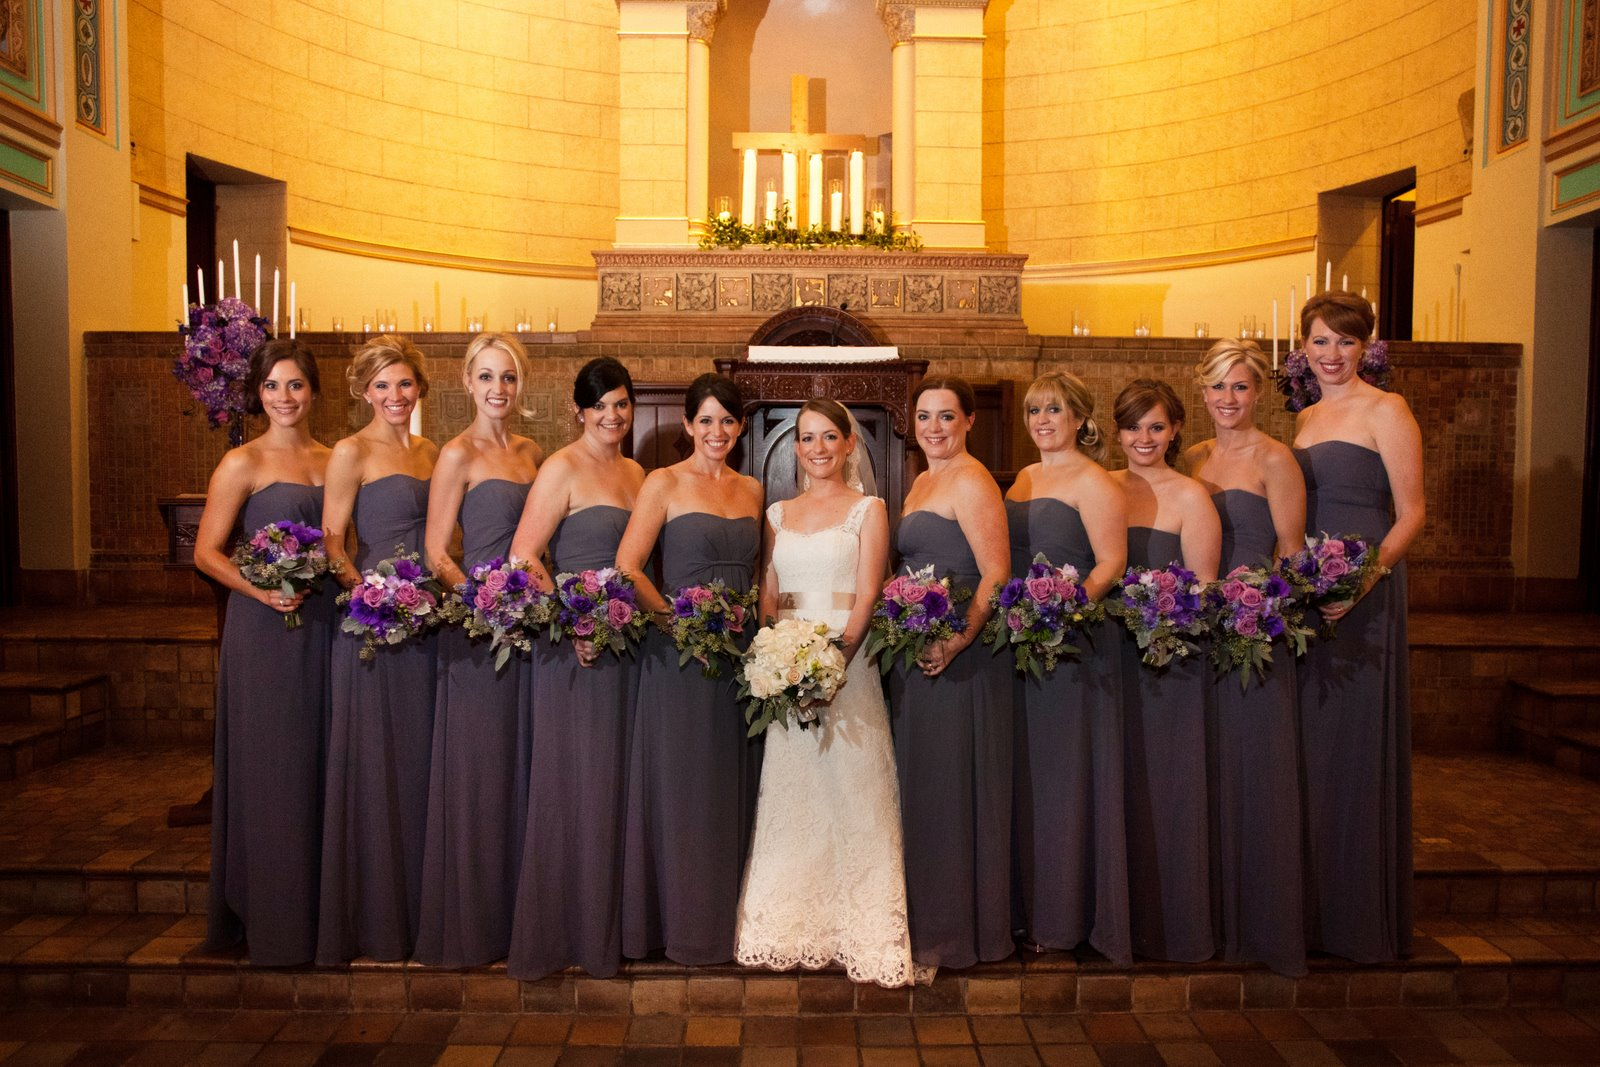 Bouquets of austin blog bouquets of austin part 13 and then there were 10 bridesmaids these gowns were a subtle shade of purplegraylavender ombrellifo Choice Image